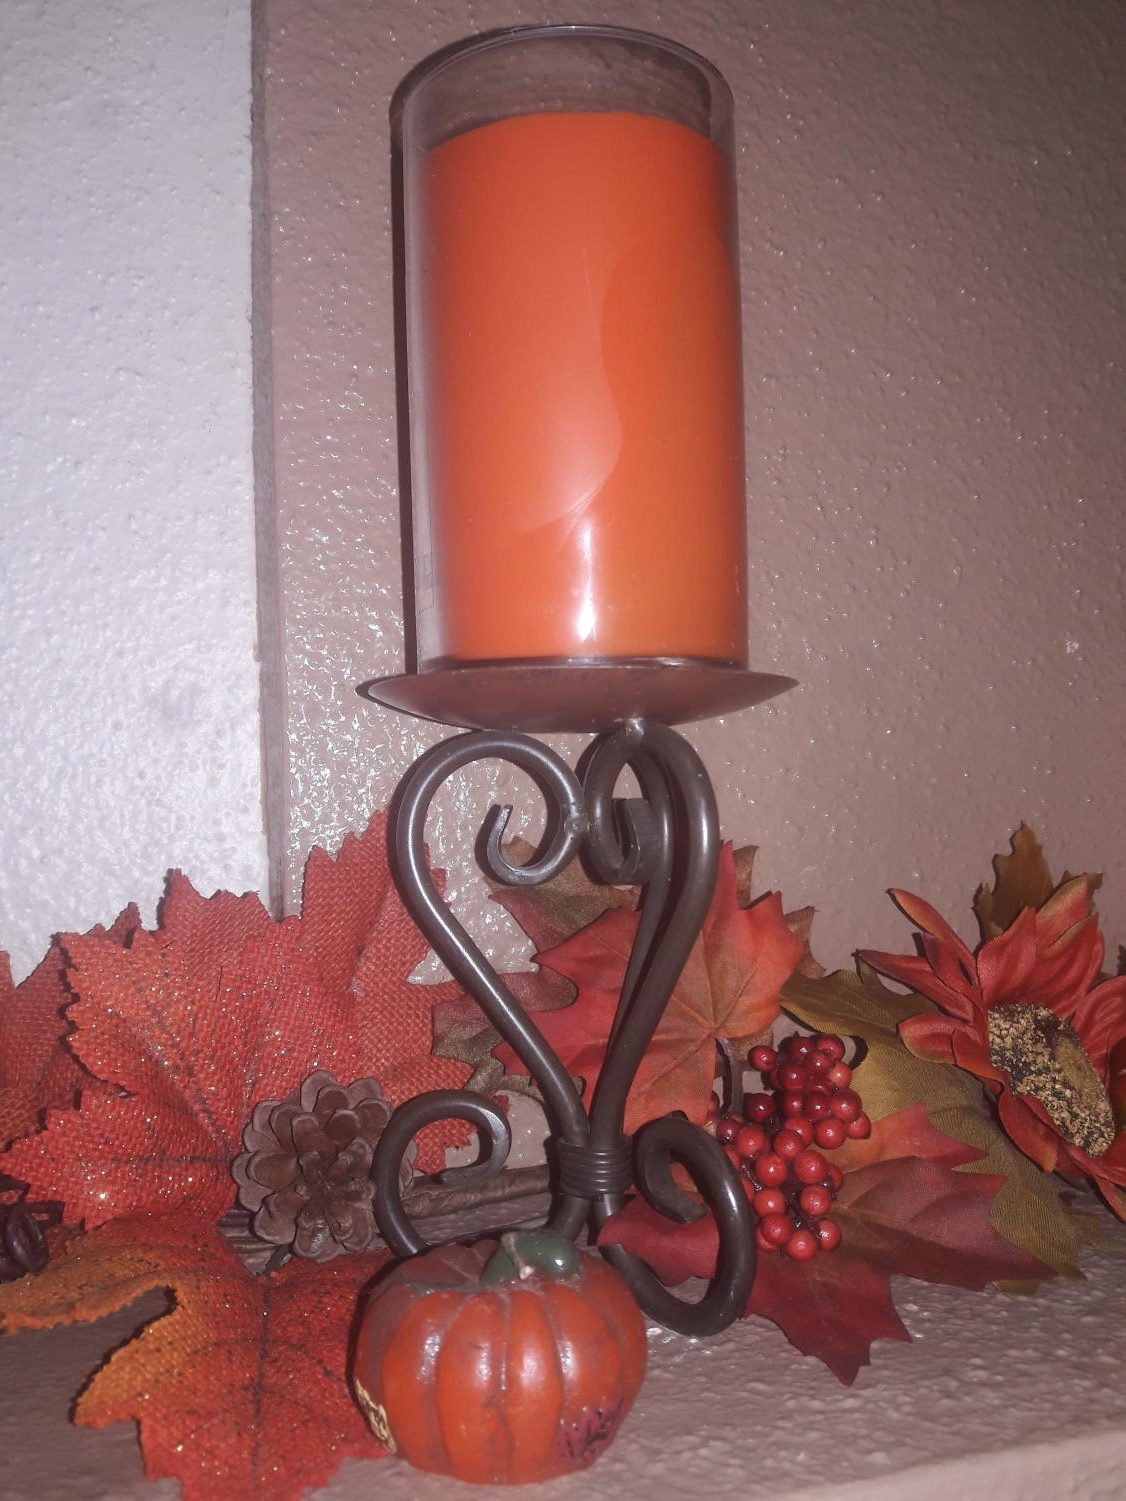 A Thanksgiving candle with fall leaves surrounding it.